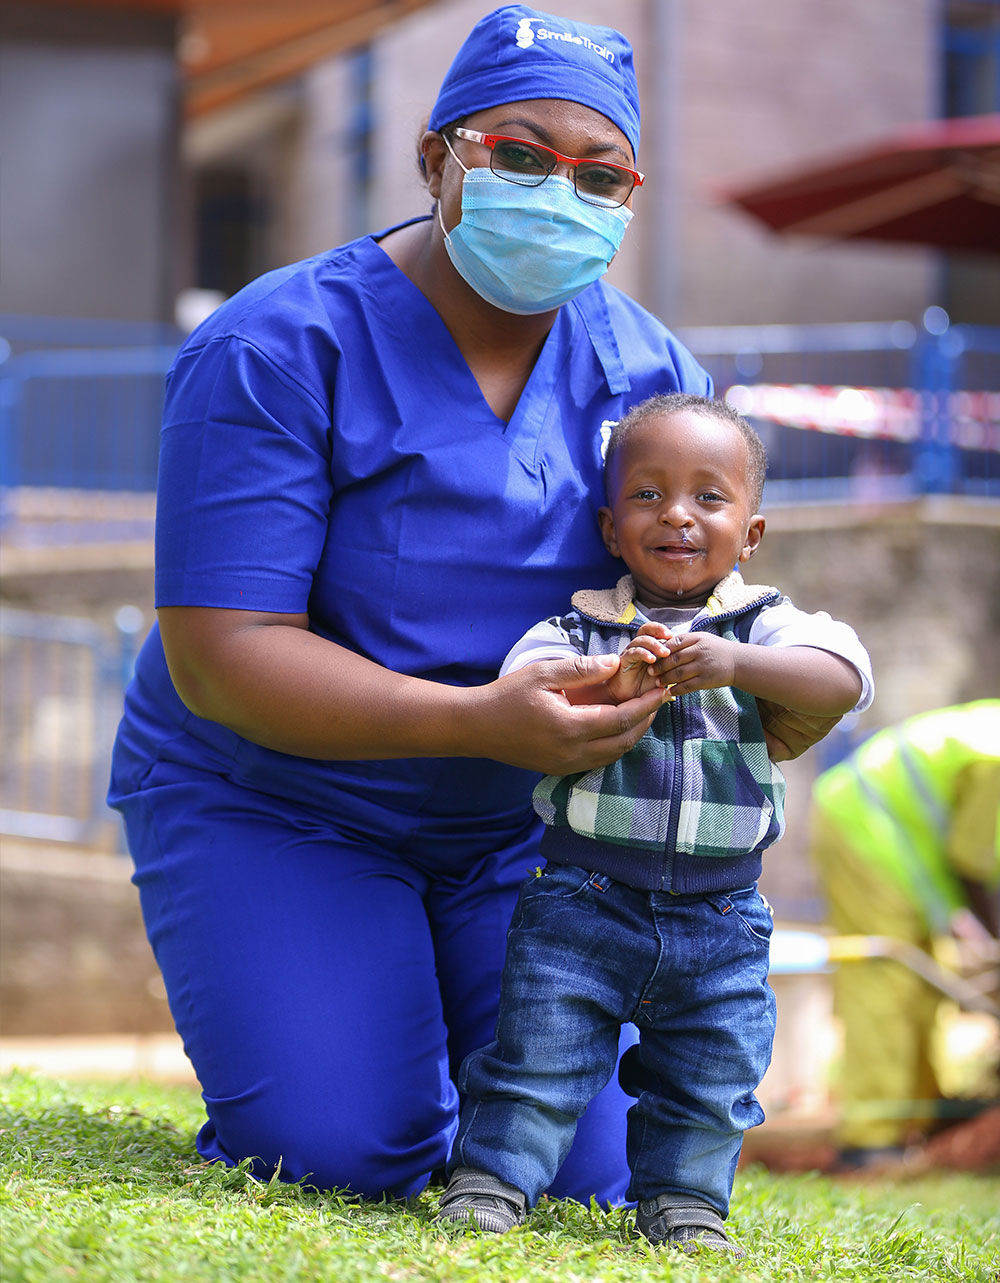 Dr. Malungo standing with a patient who had cleft lip and cleft palate surgery in Lusaka, Zambia.